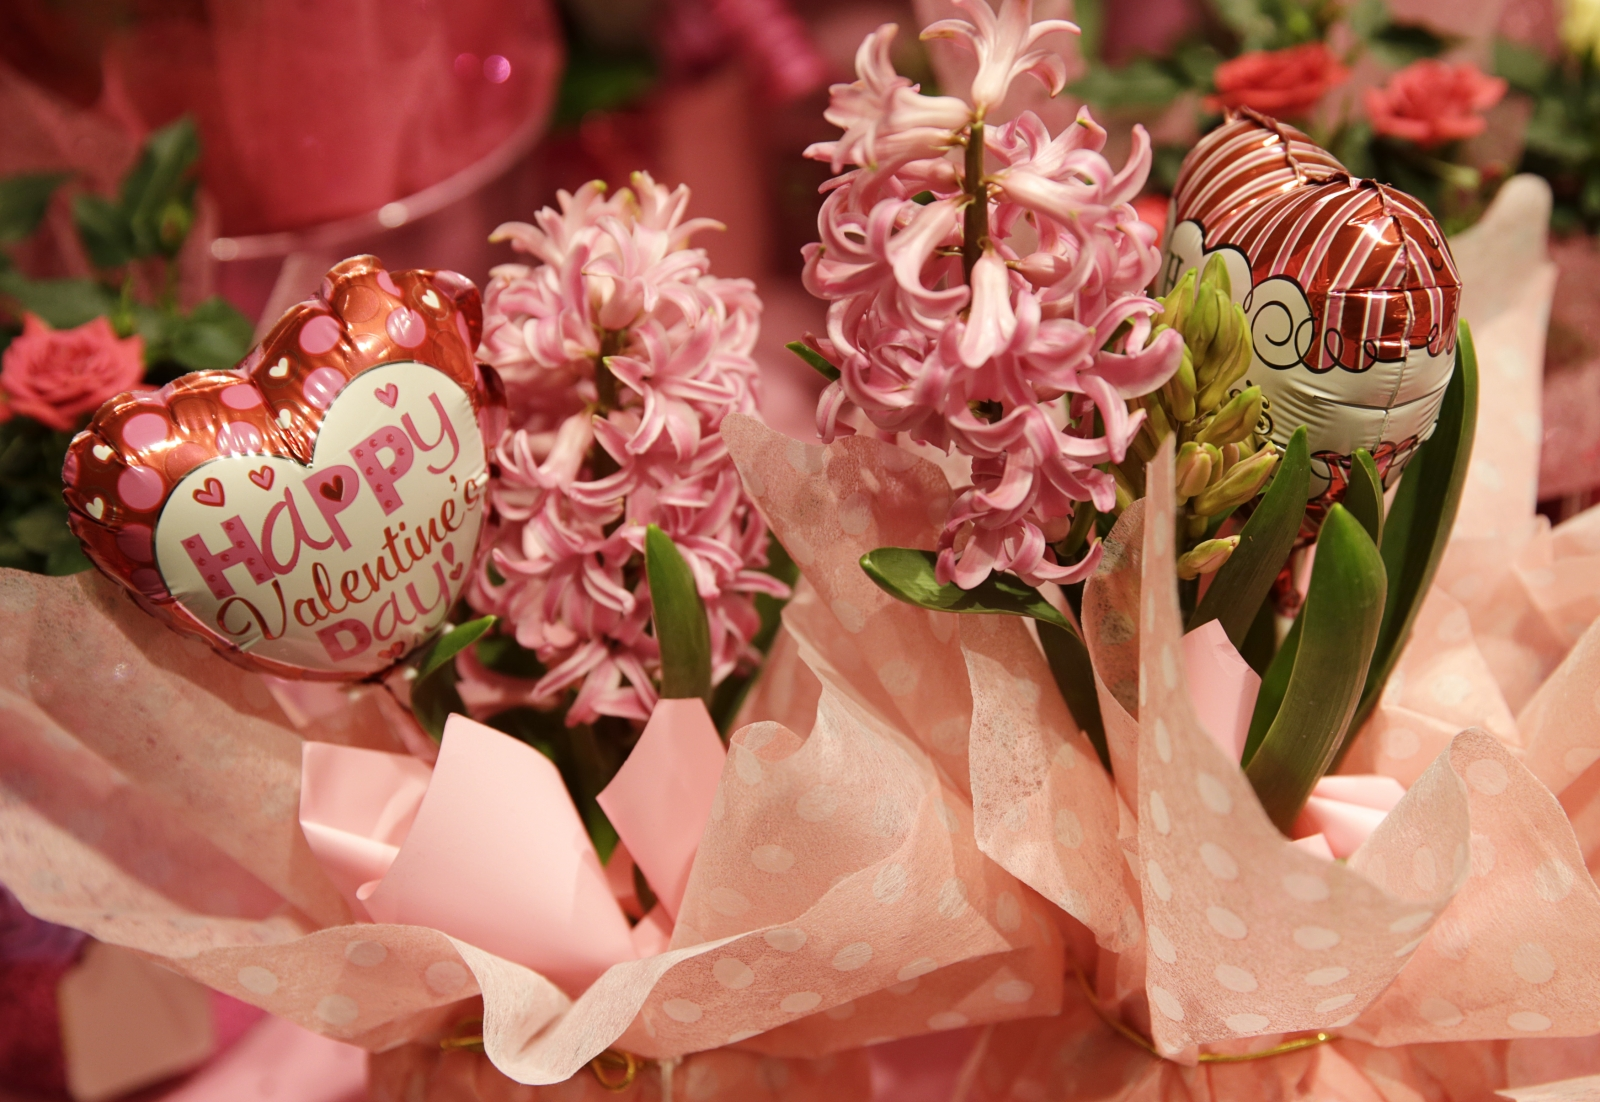 A Valentine's Day floral arrangement is seen at the Safeway store in Wheaton, Maryland